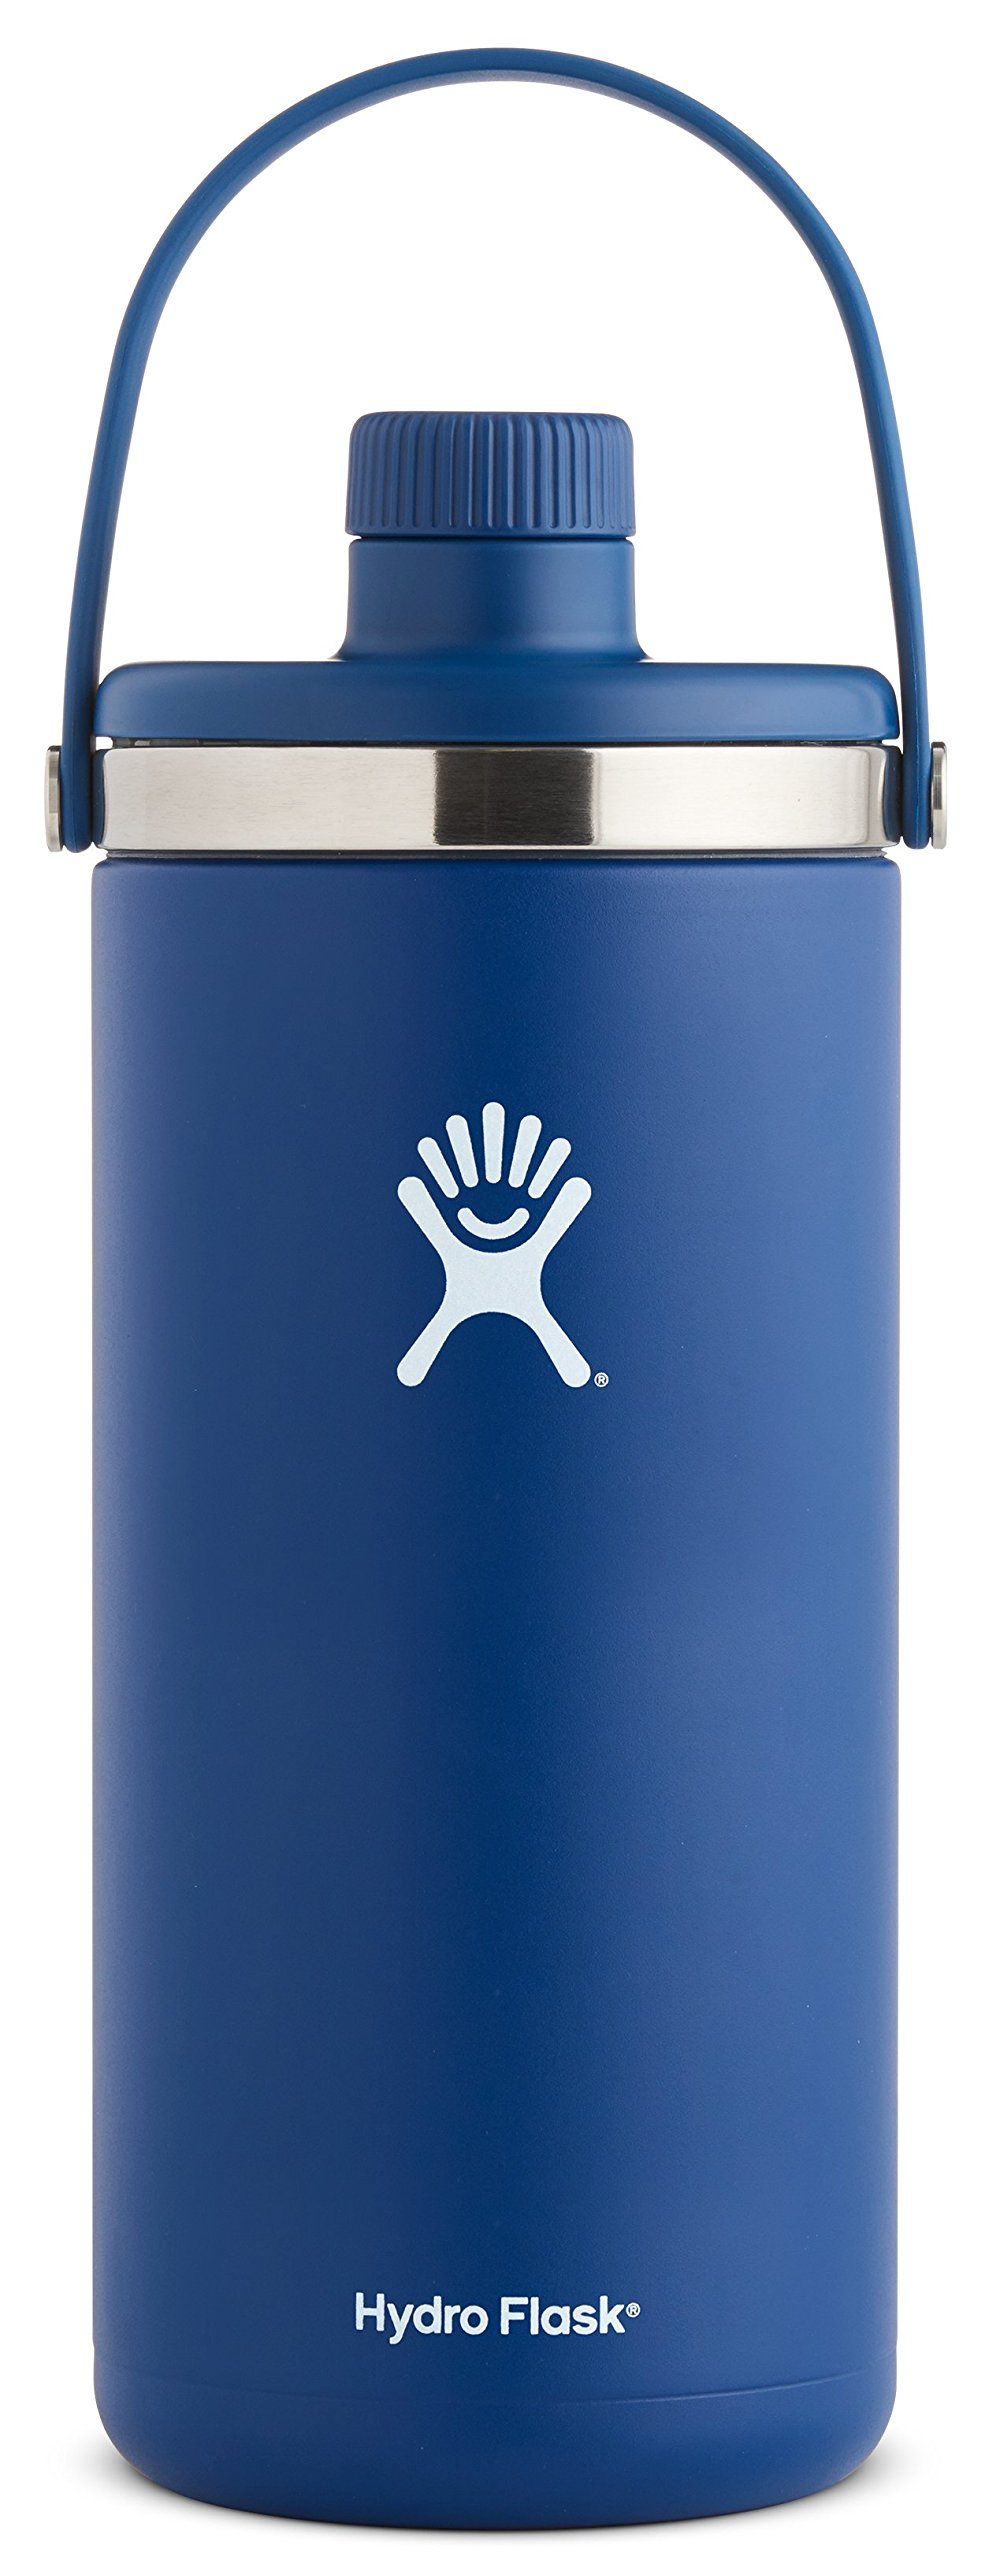 Hydro Flask 128 oz 1 gal Double Wall Vacuum Insulated Stainless Steel Leak Proof Oasis Water Cooler / Thermos / Jug, Cobalt